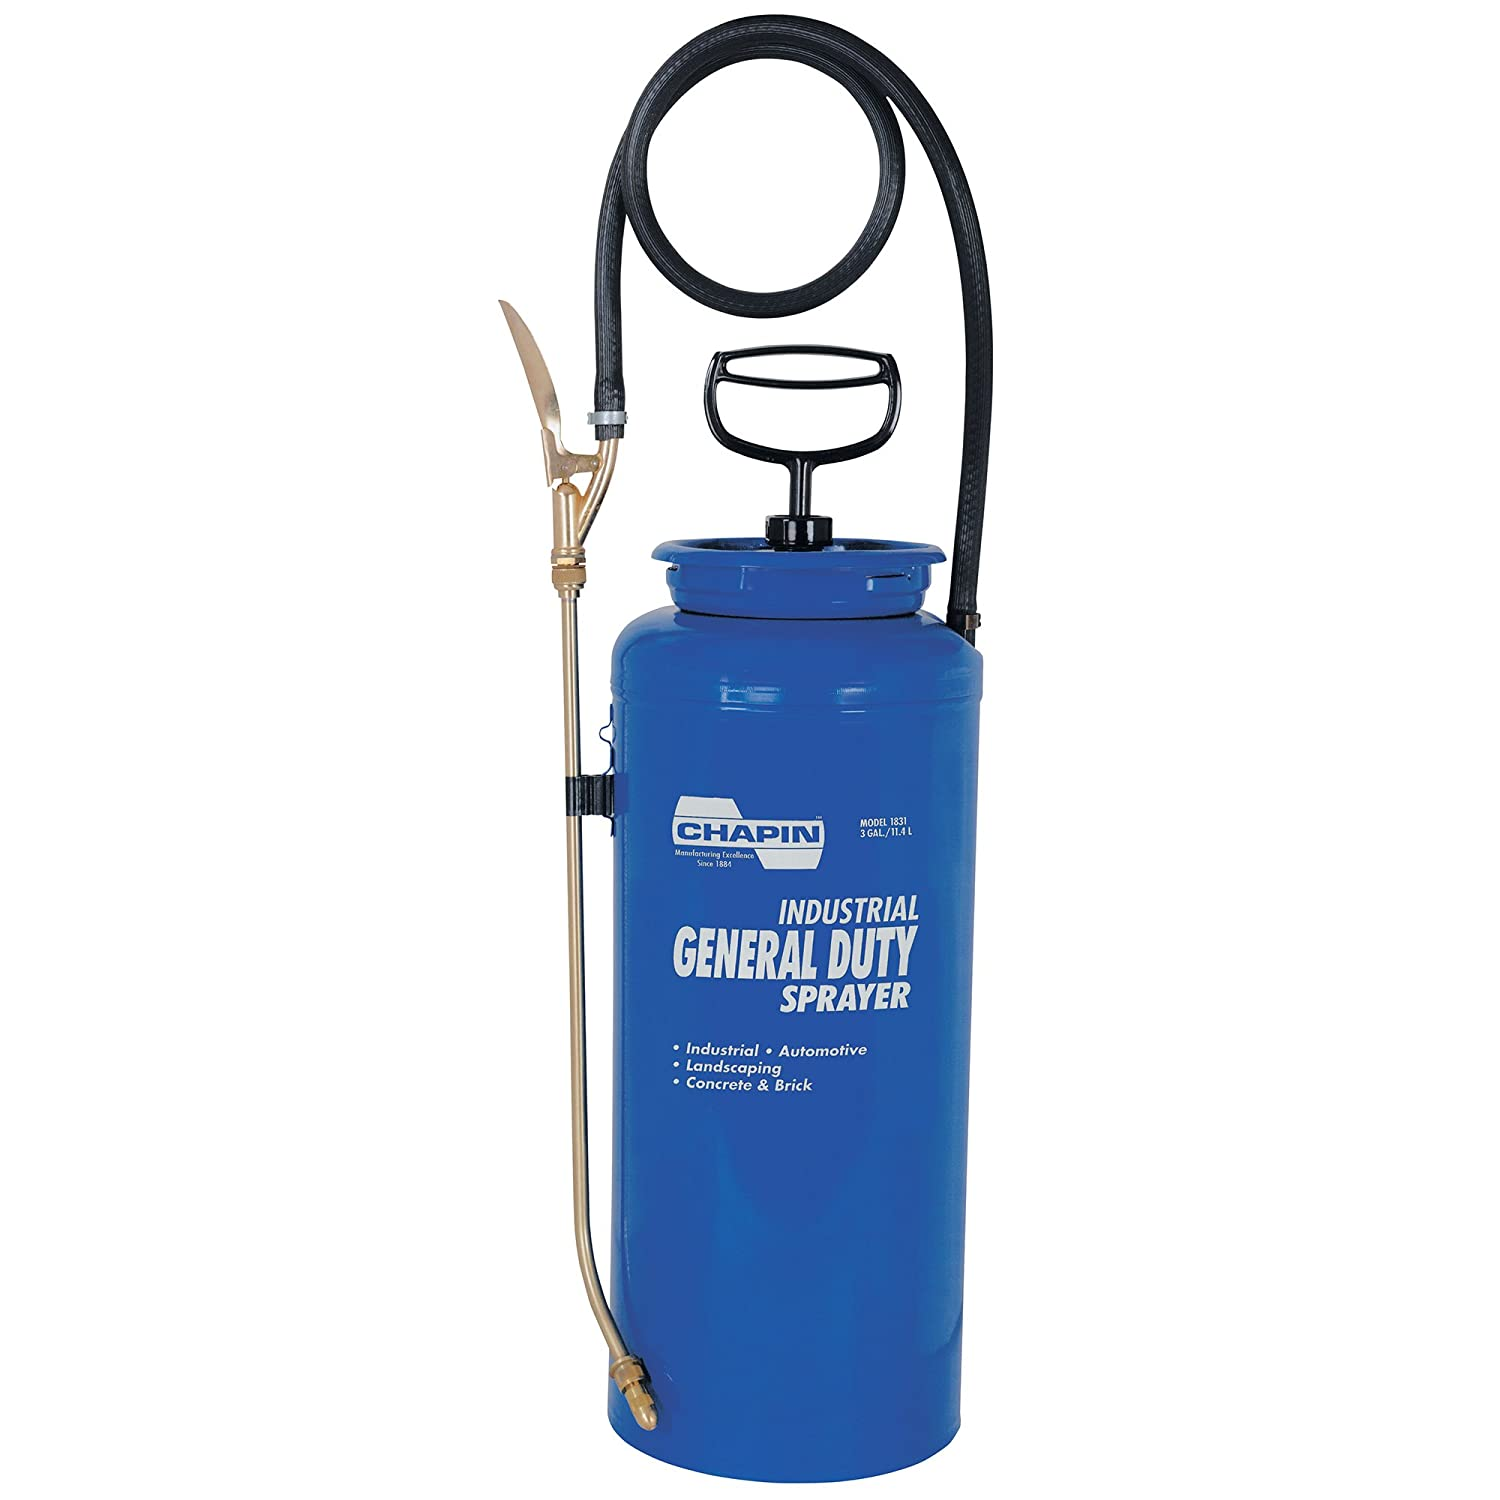 Chapin 1831 3-Gallon Industrial Open Head General Duty Sprayer for Fertilizer, Herbicides and Pesticides (1 Sprayer/Package)